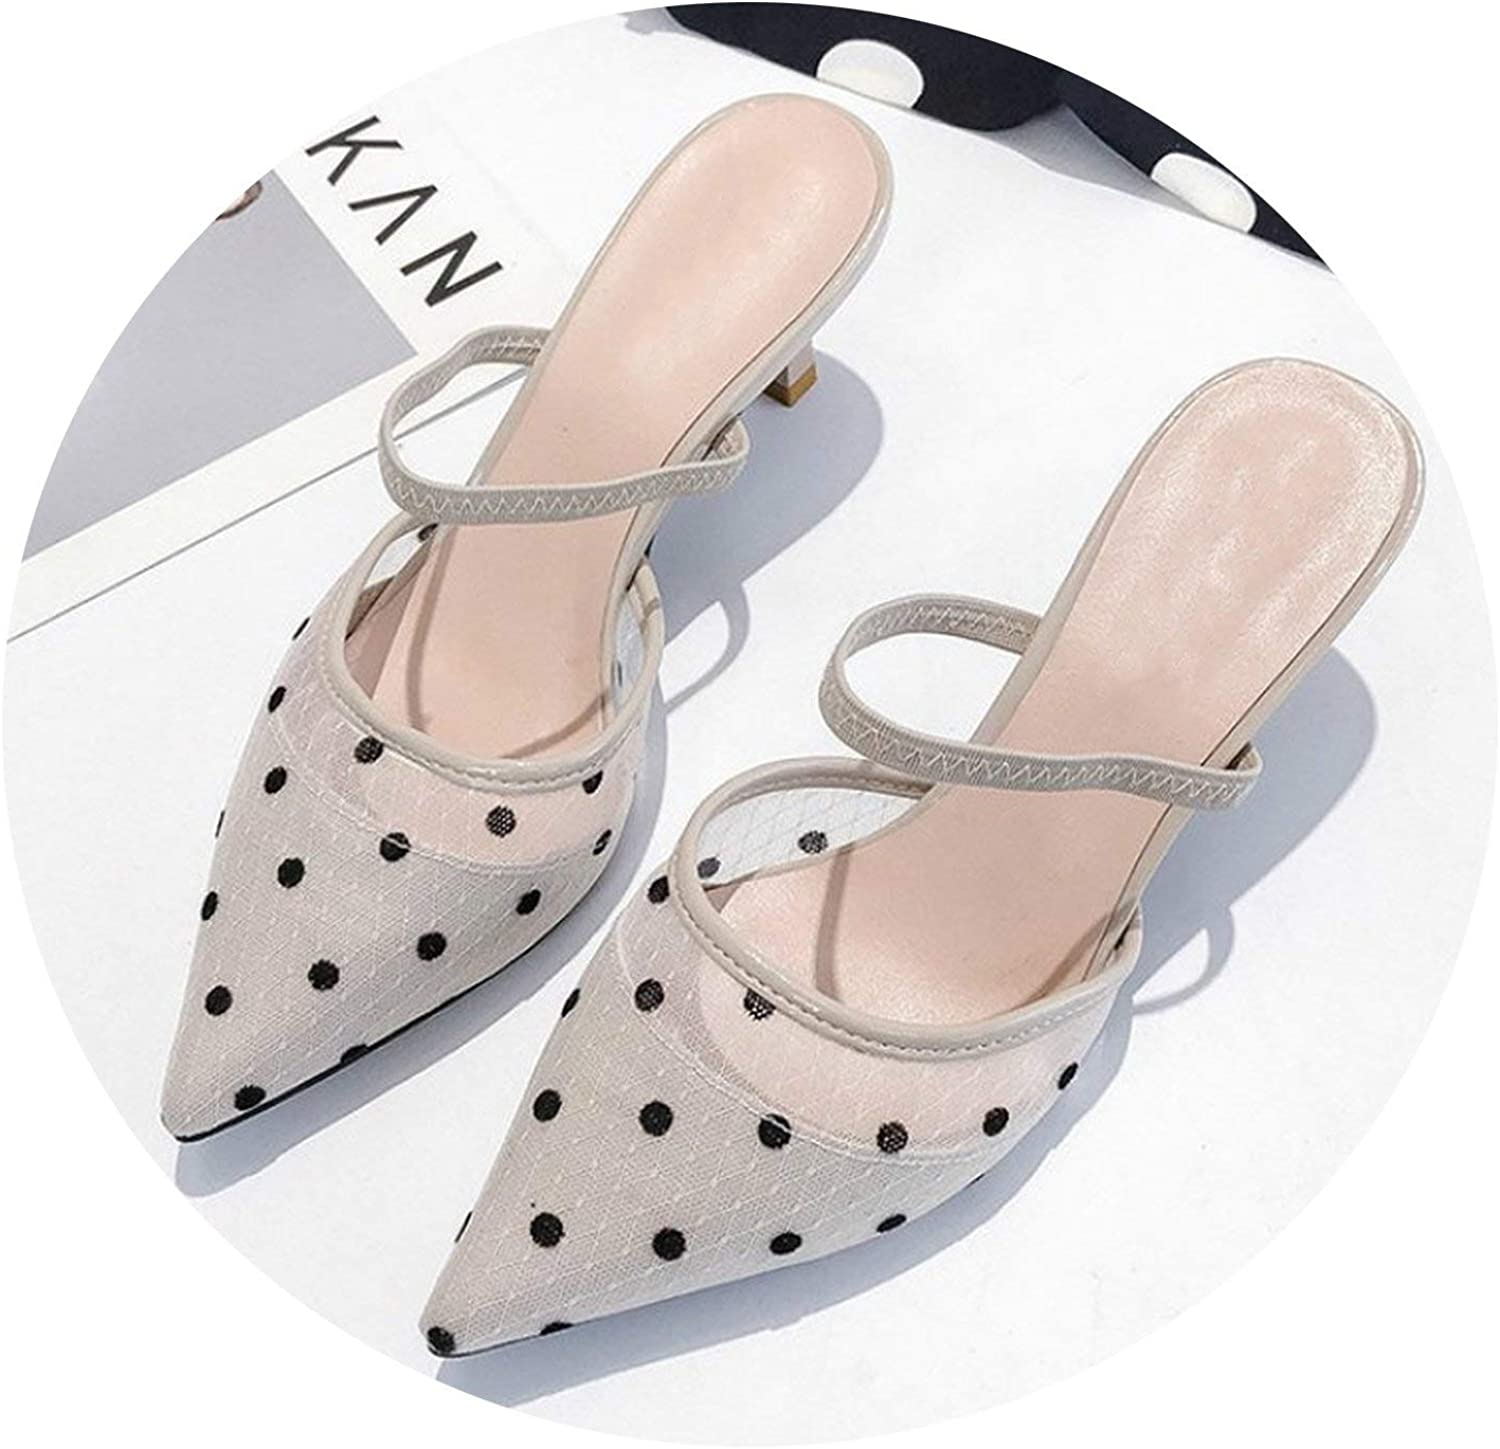 I Need-You shoes Women High Heel Polka Dot 2019 Summer Fashion New Mules shoes Ladies Pointed Toe Slip On Half Slippers Large Size